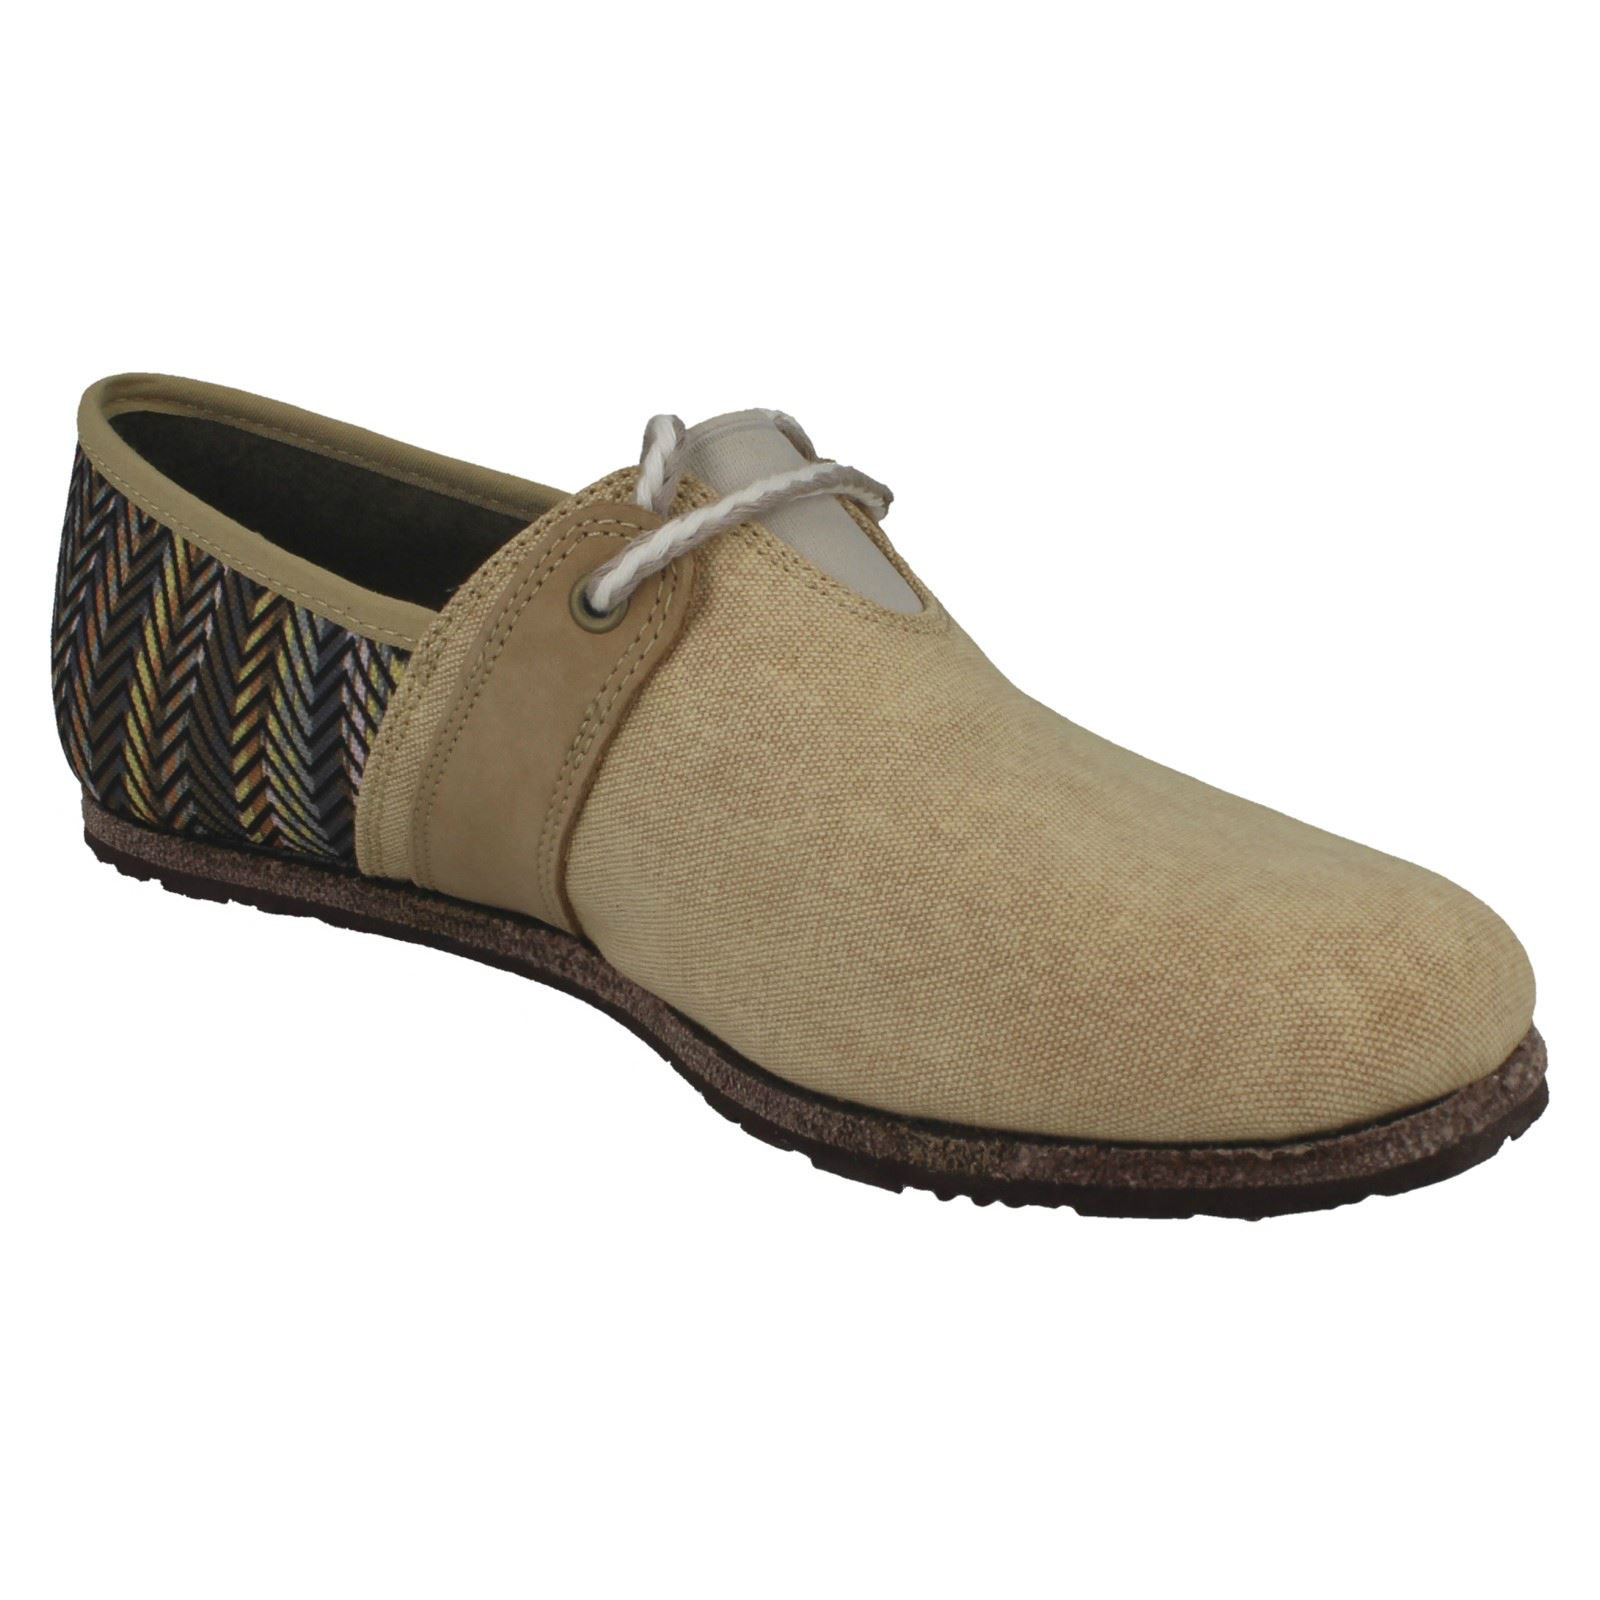 Ladies-Merrell-Casual-Flat-Shoes-039-Artemisia-039 thumbnail 6